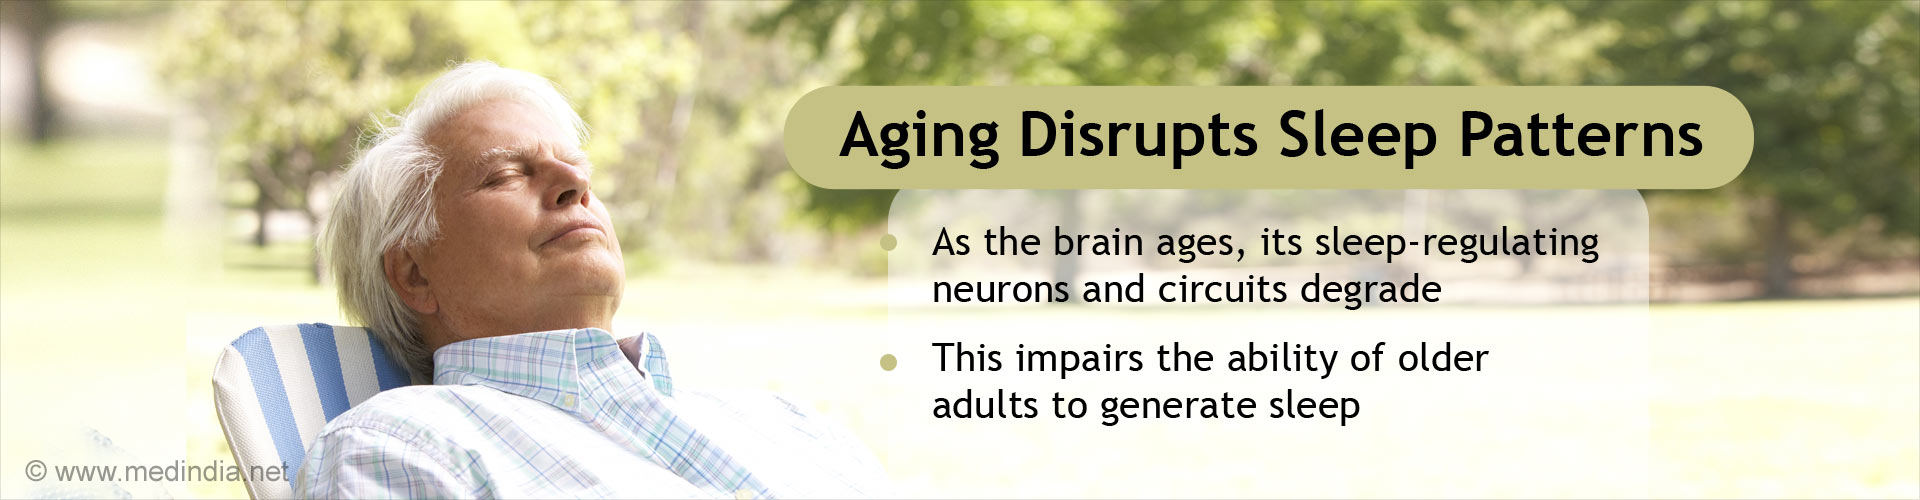 Does Aging Disrupt Sleep?